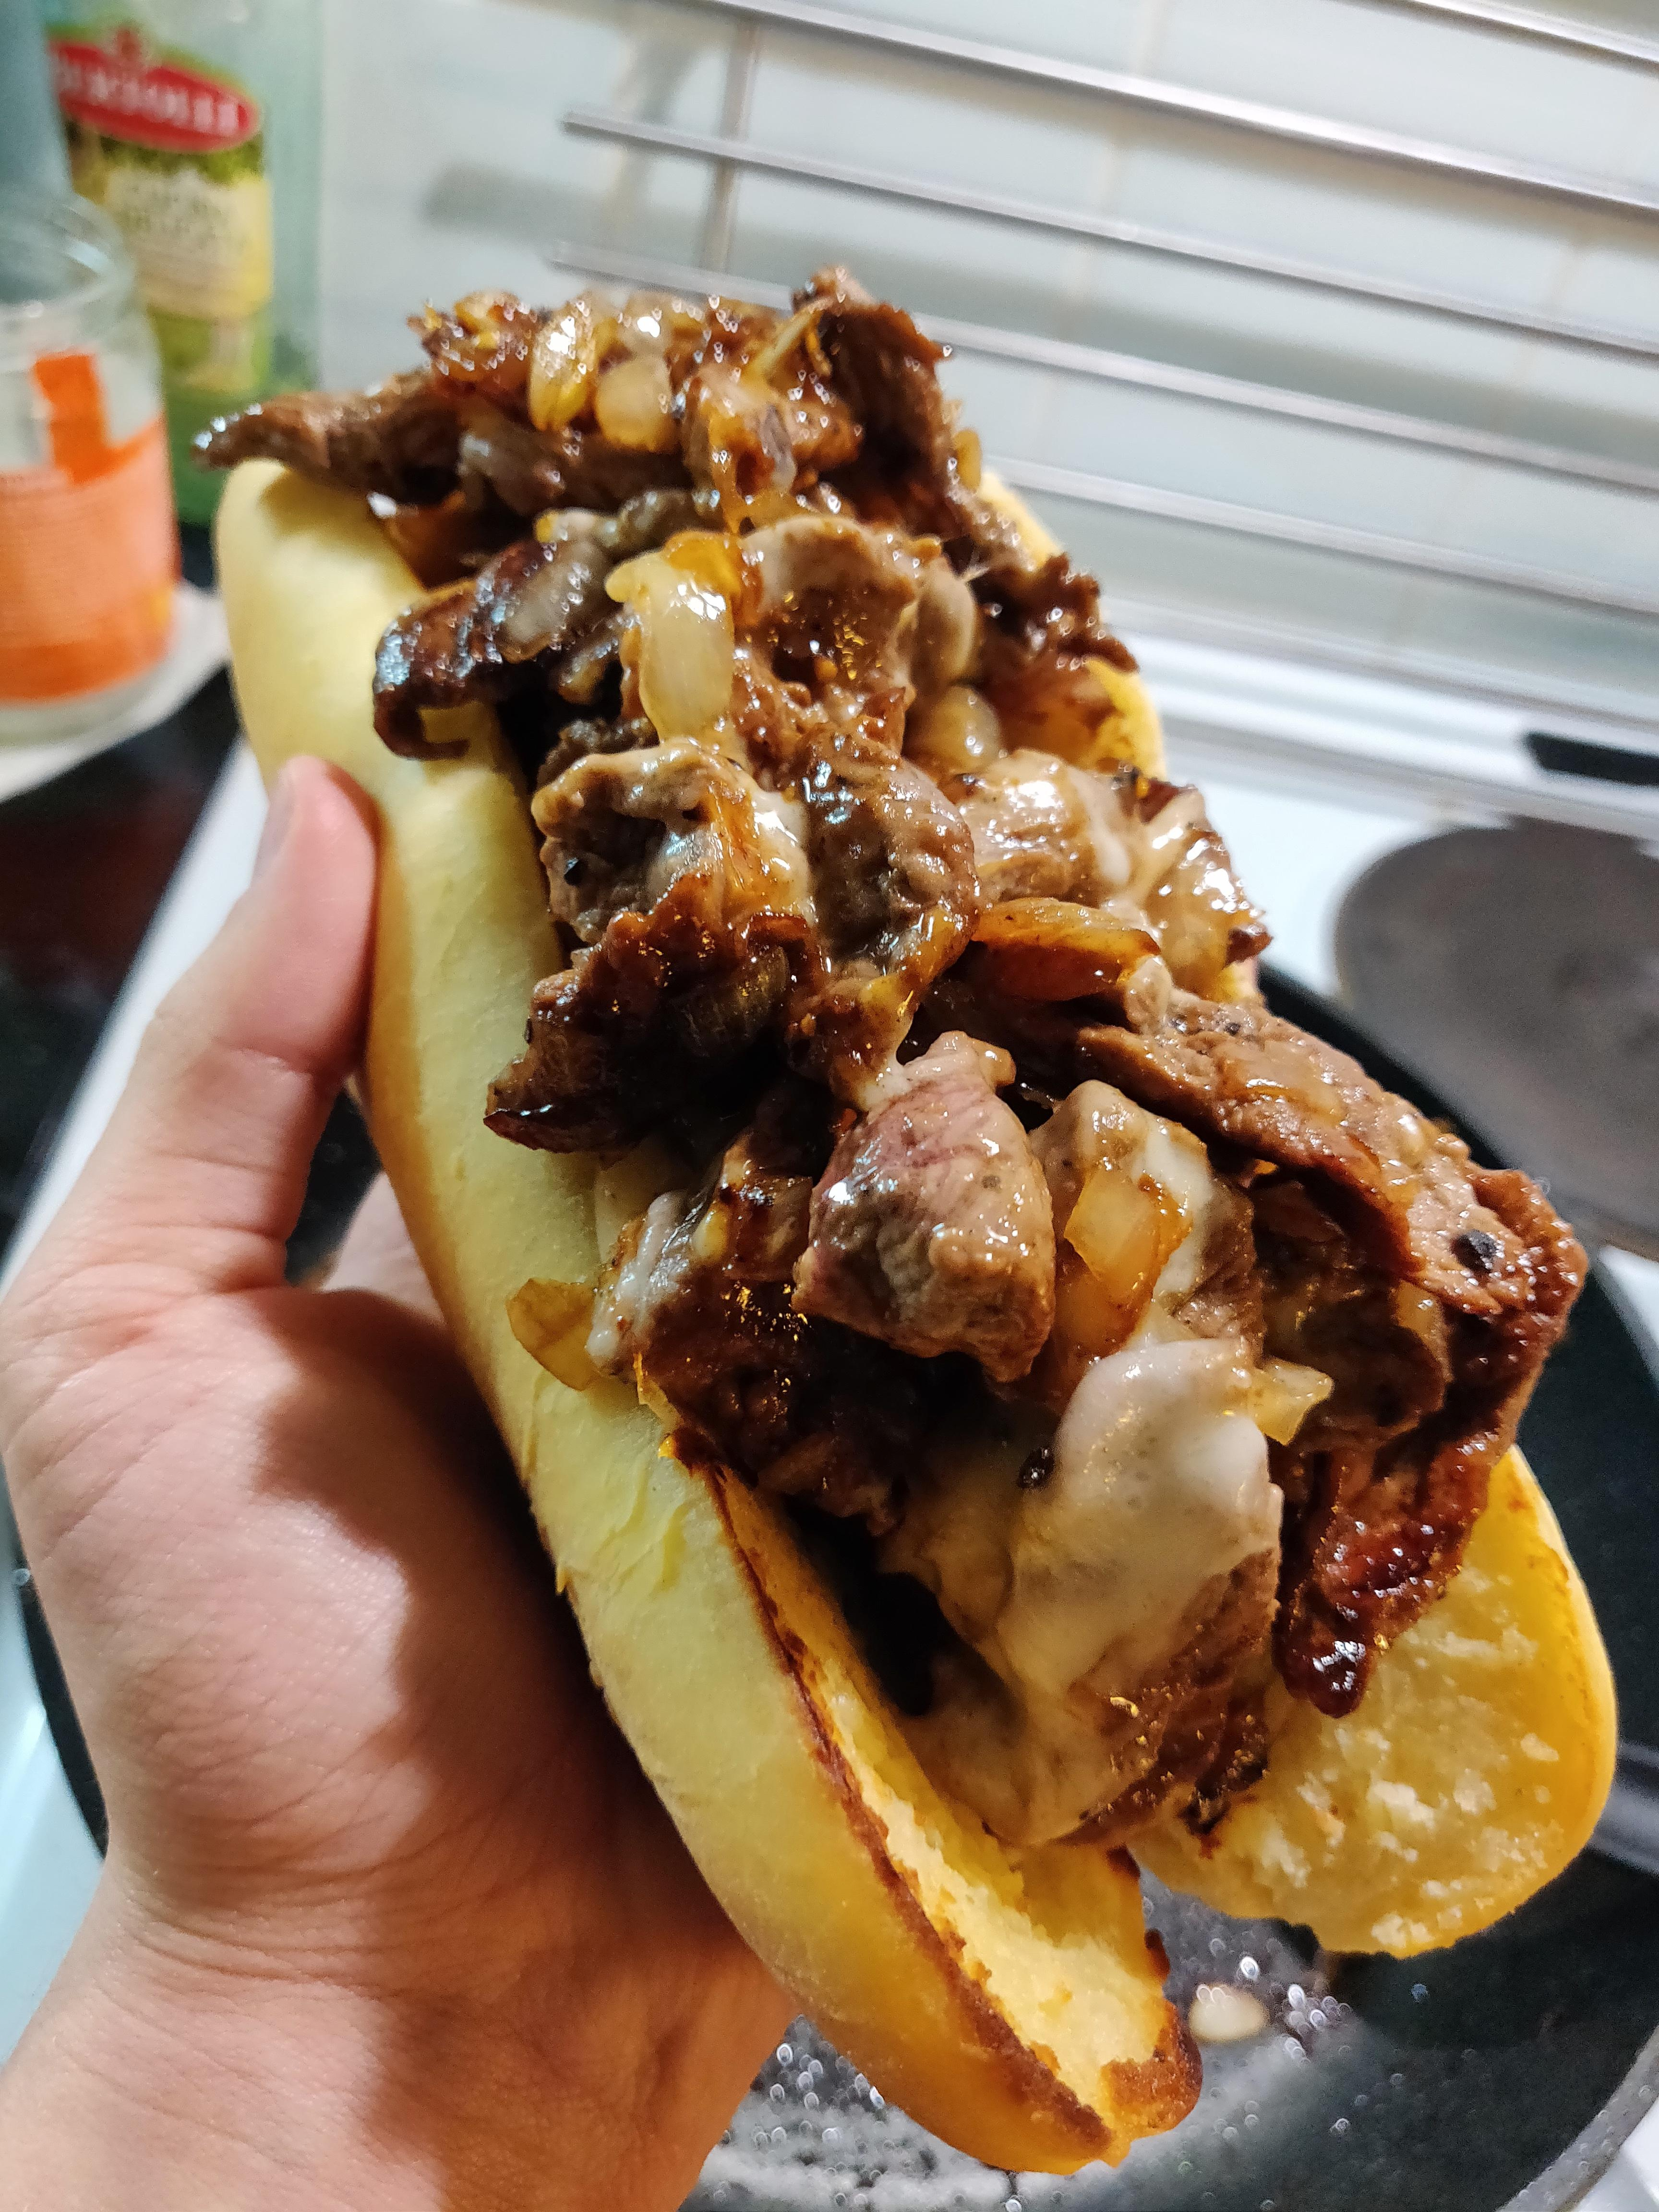 Cheesesteak with homemade hoagie roll and provolone